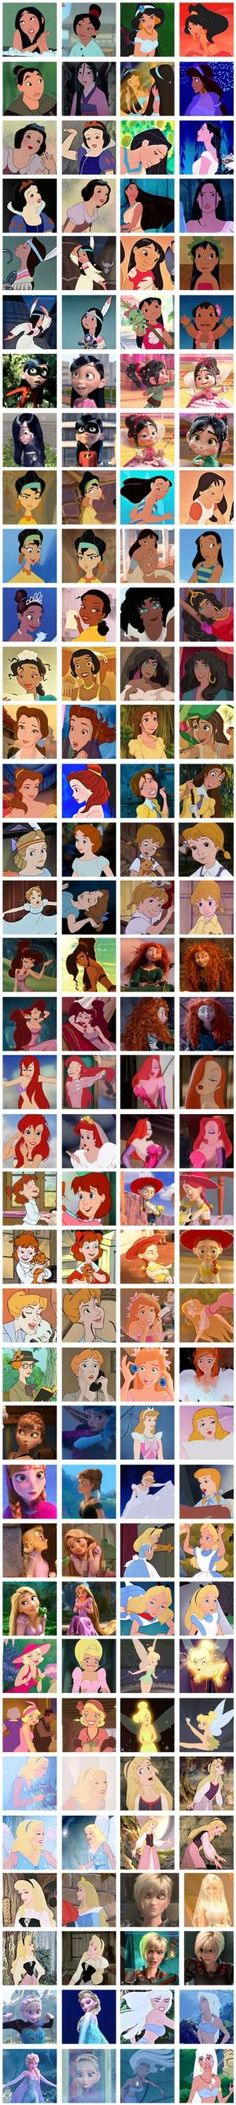 All the Disney ladies.=)